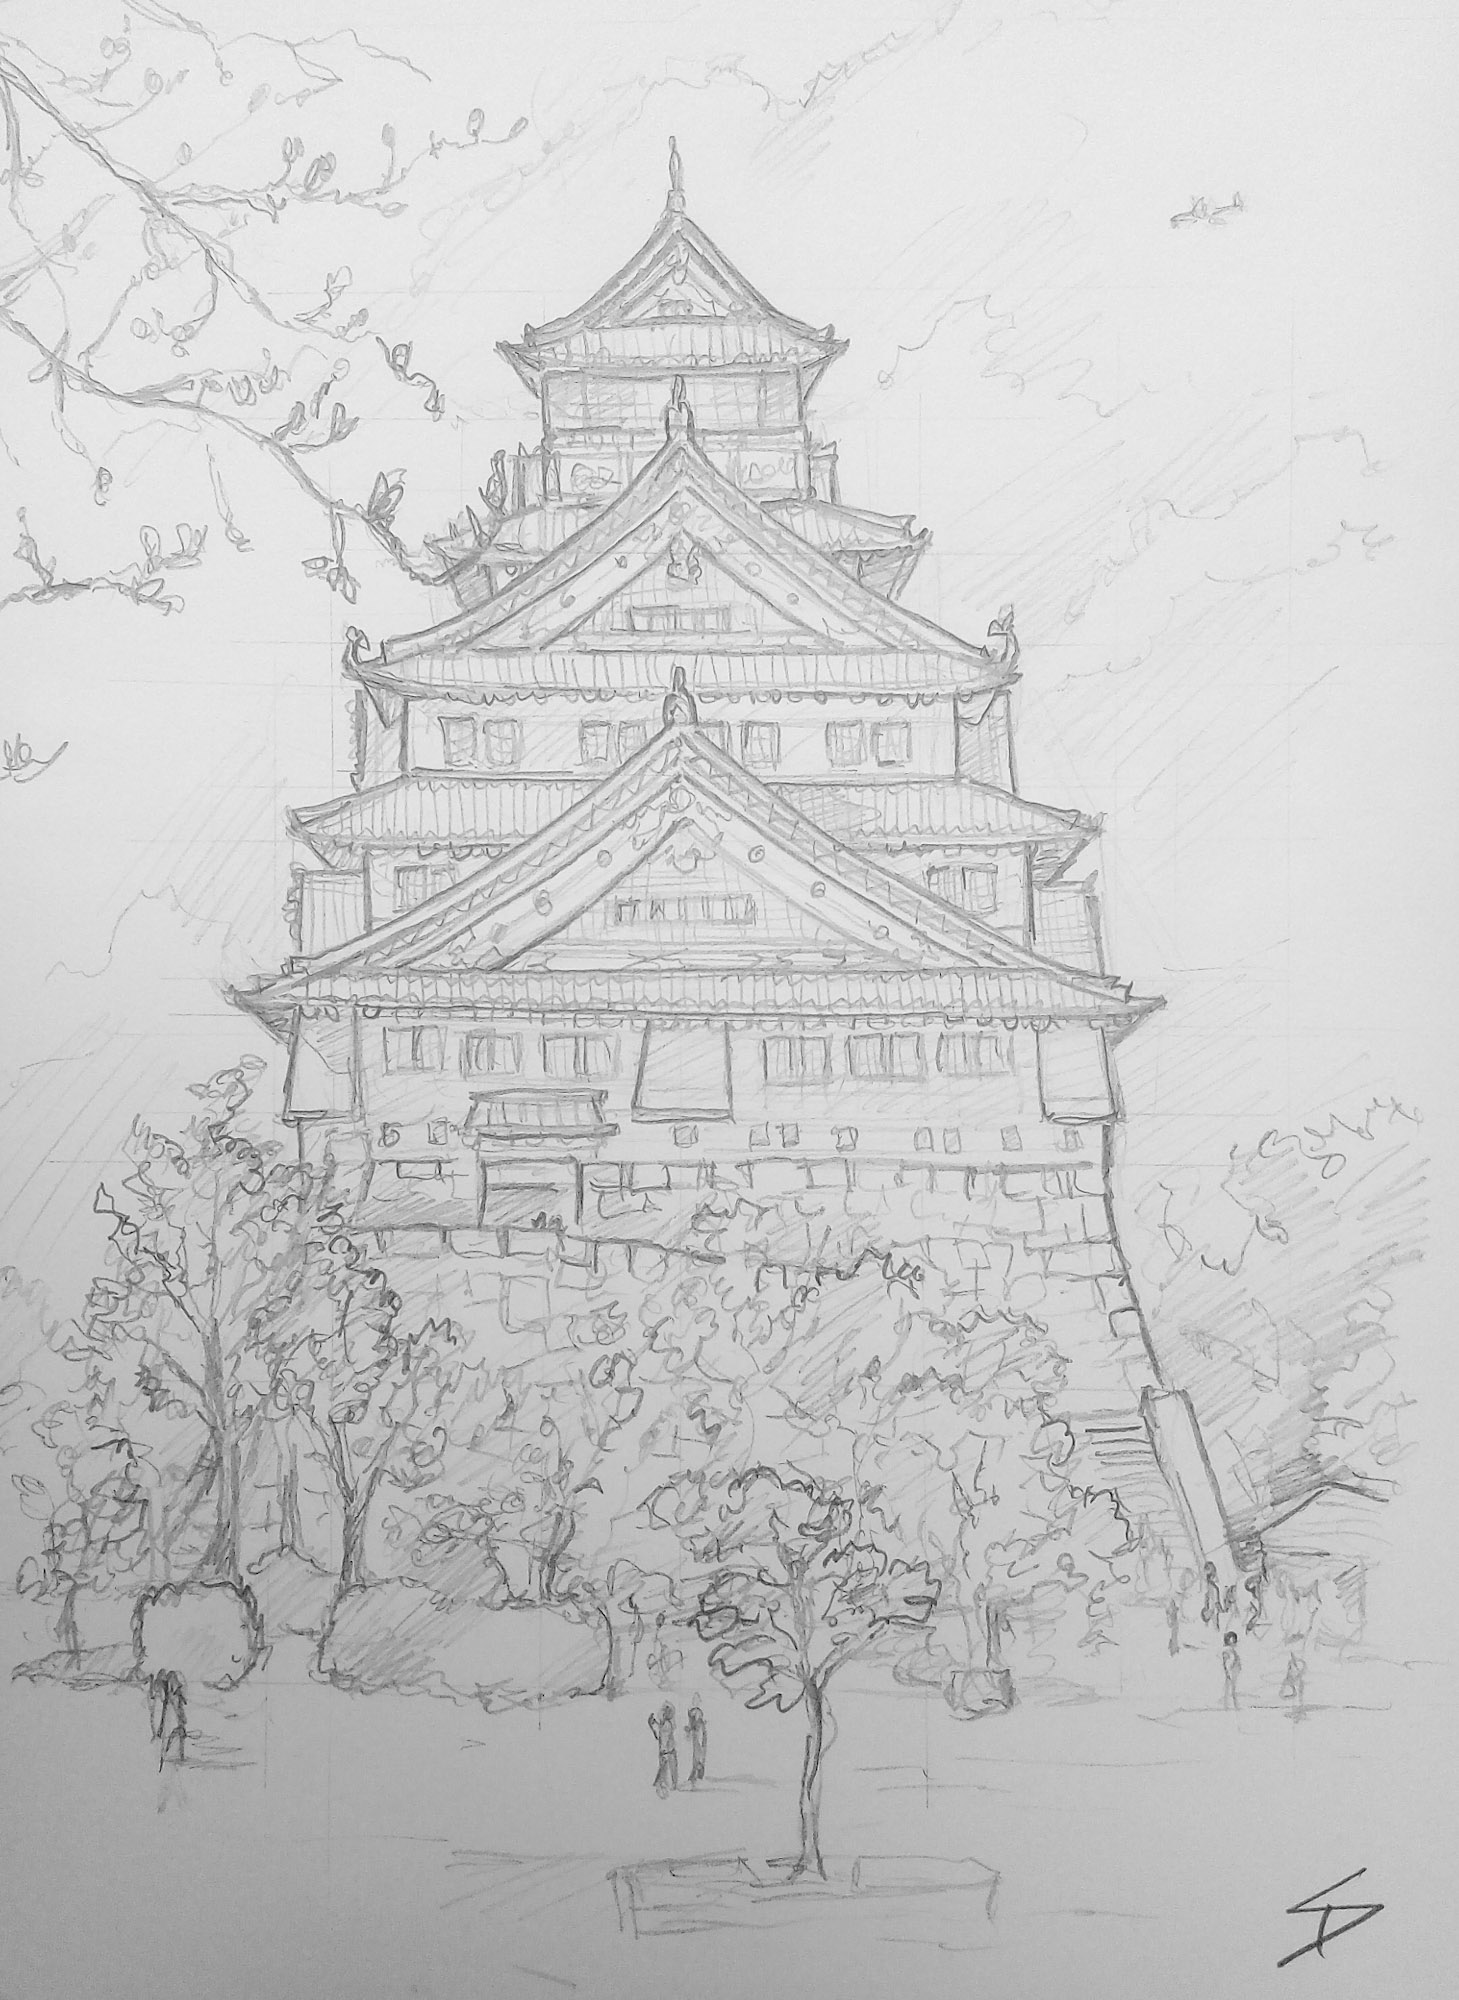 Urban art - Chuo Ward, Osaka, Japan. 'Osaka Castle.' Took some searching to get this view, including a little climbing. sketchbookexplorer.com @davidasutton @sketchbookexplorer Facebook.com/davidanthonysutton #japan #osaka #chuoward #osakacastle #travel #travelblog #art #sketching #cheeryblossom #cherryblossomseason